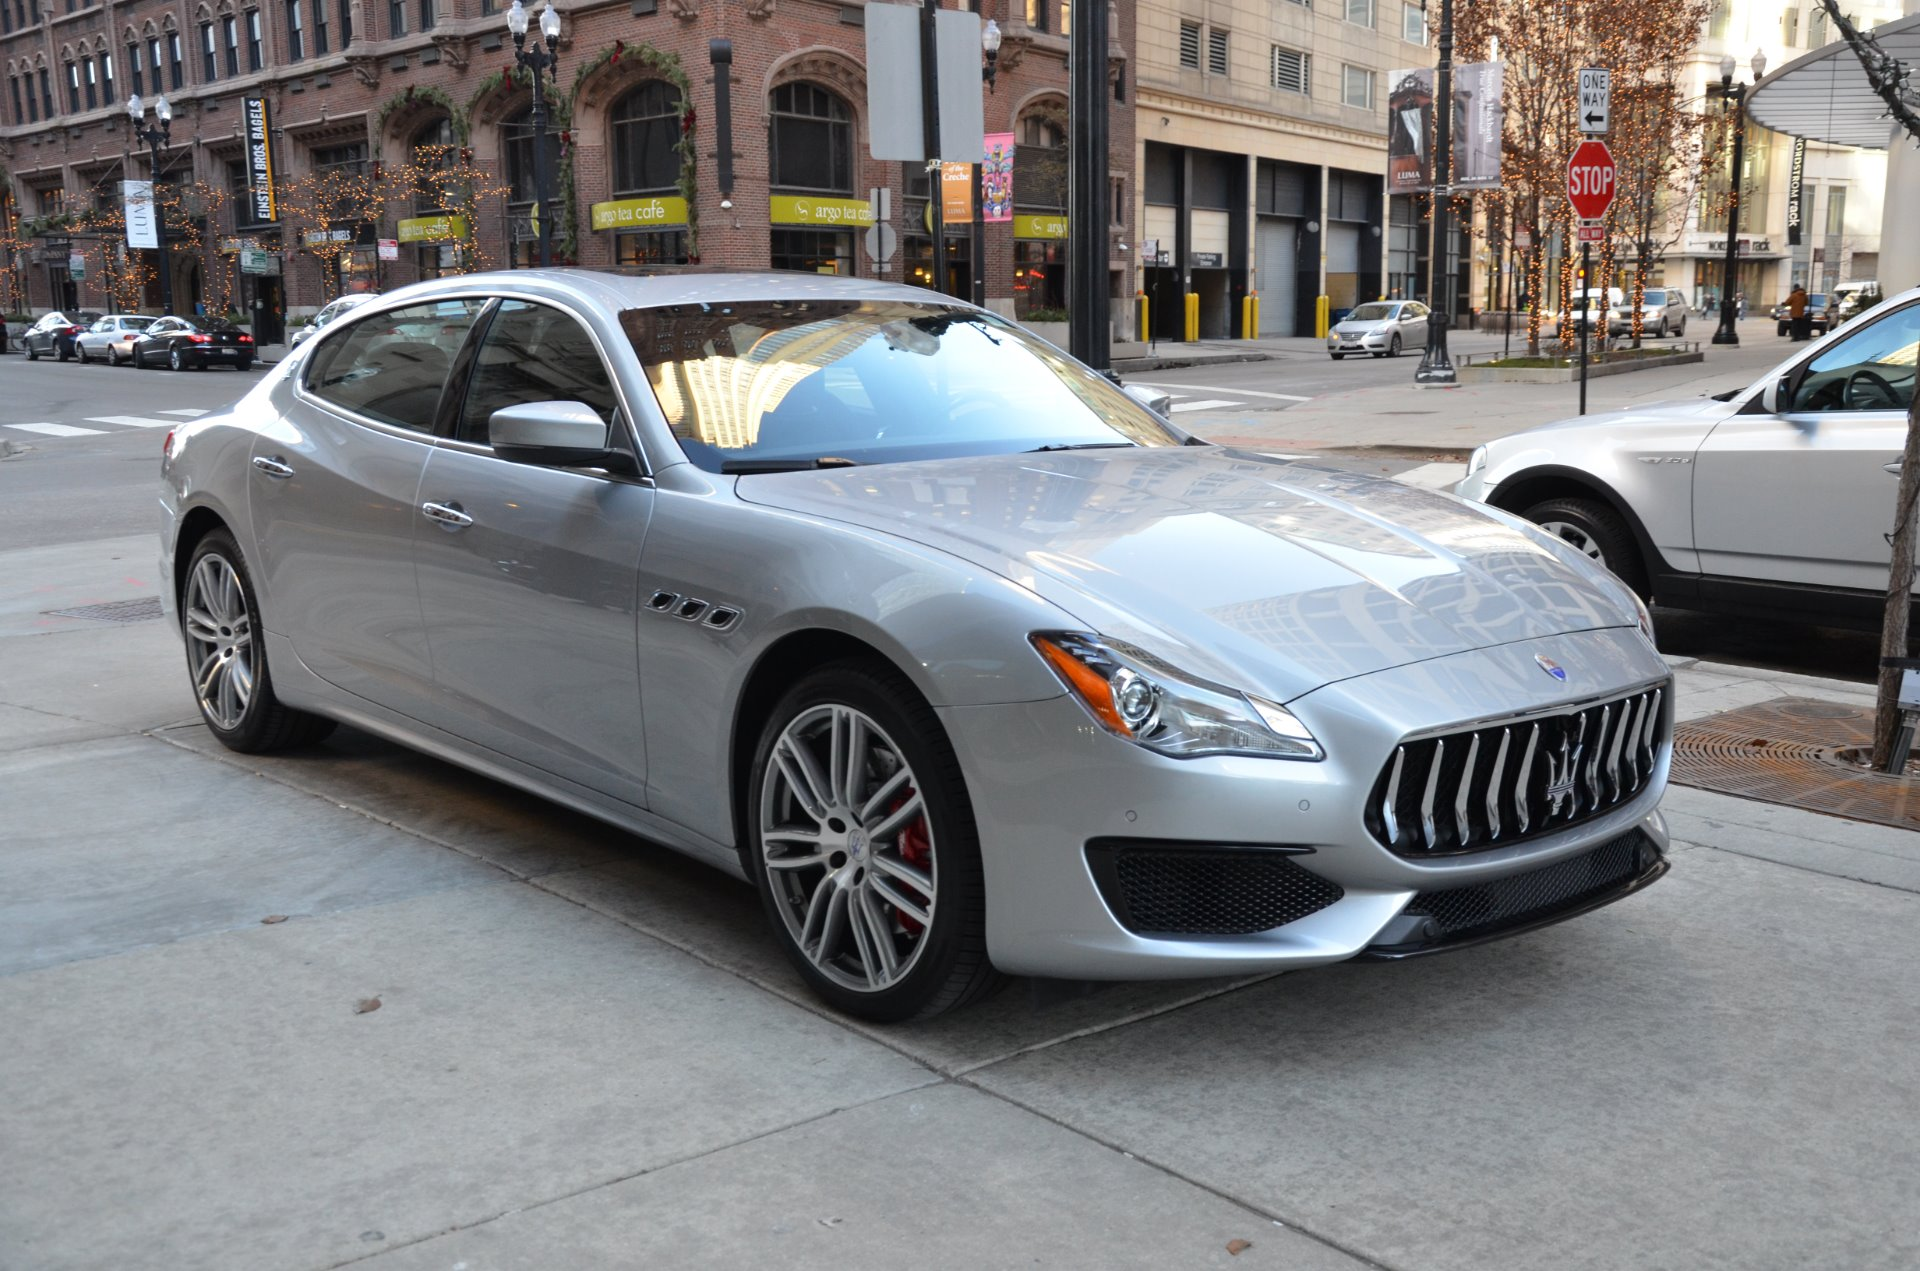 2017 maserati quattroporte sq4 s q4 gransport stock m556 for sale near chicago il il. Black Bedroom Furniture Sets. Home Design Ideas